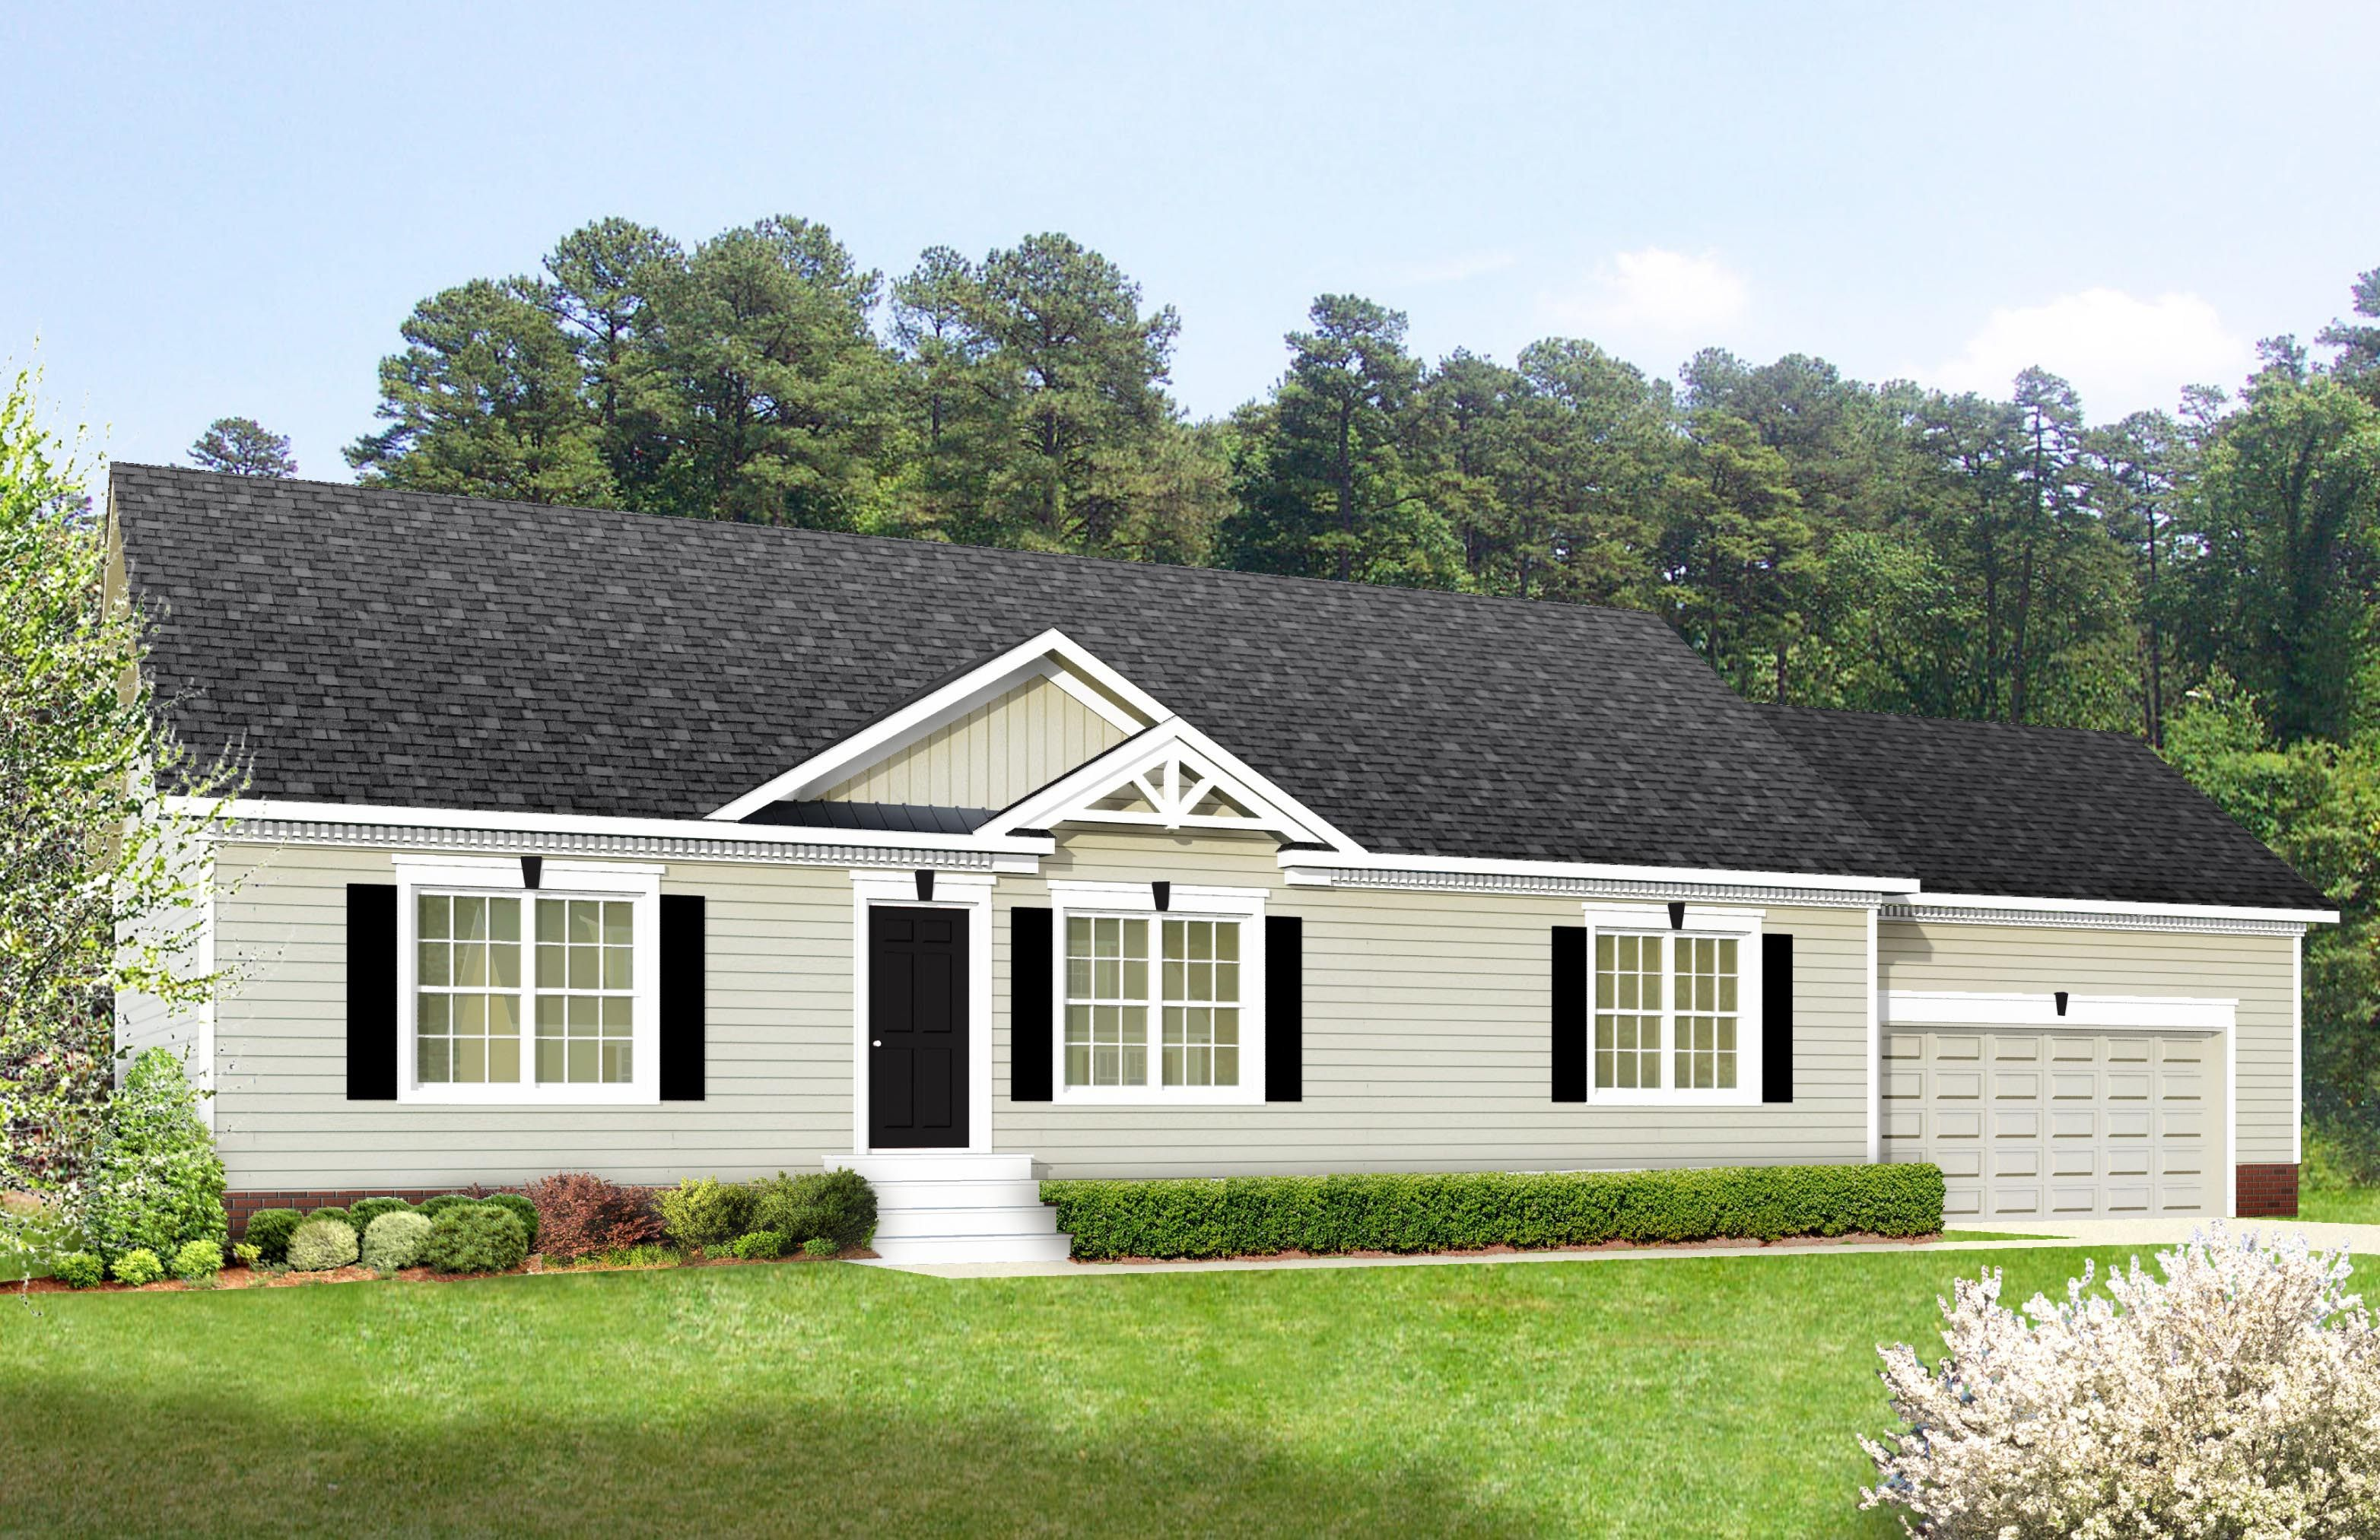 plans open home homes log mountain cabin floors striking house floor modular new with designs incredible single story